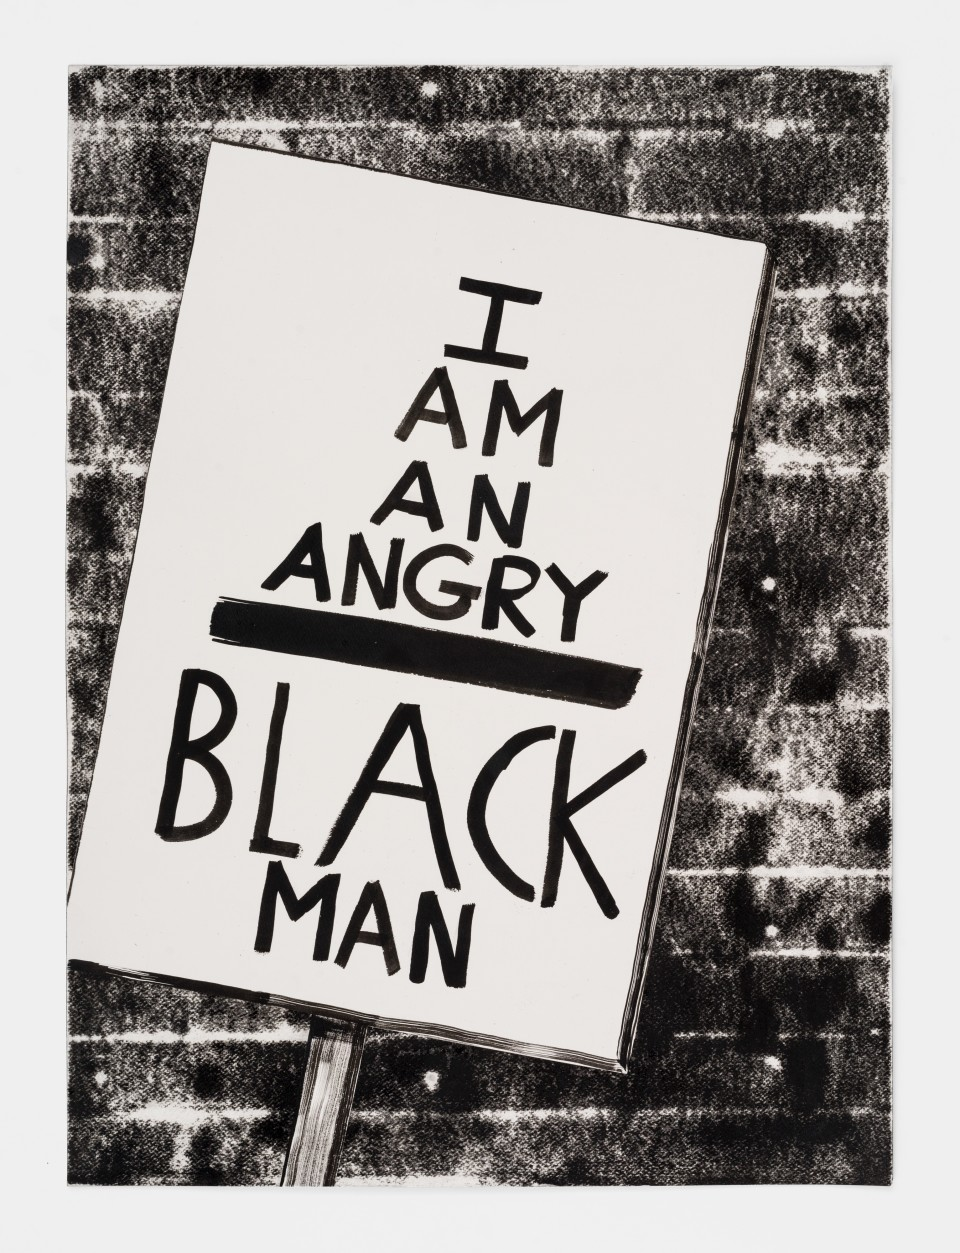 Image: Mark Thomas Gibson  I AM AN ANGRY BLACK MAN, 2020  ink on paper collage  30 x 22 inches (76.2 x 55.9 cm)